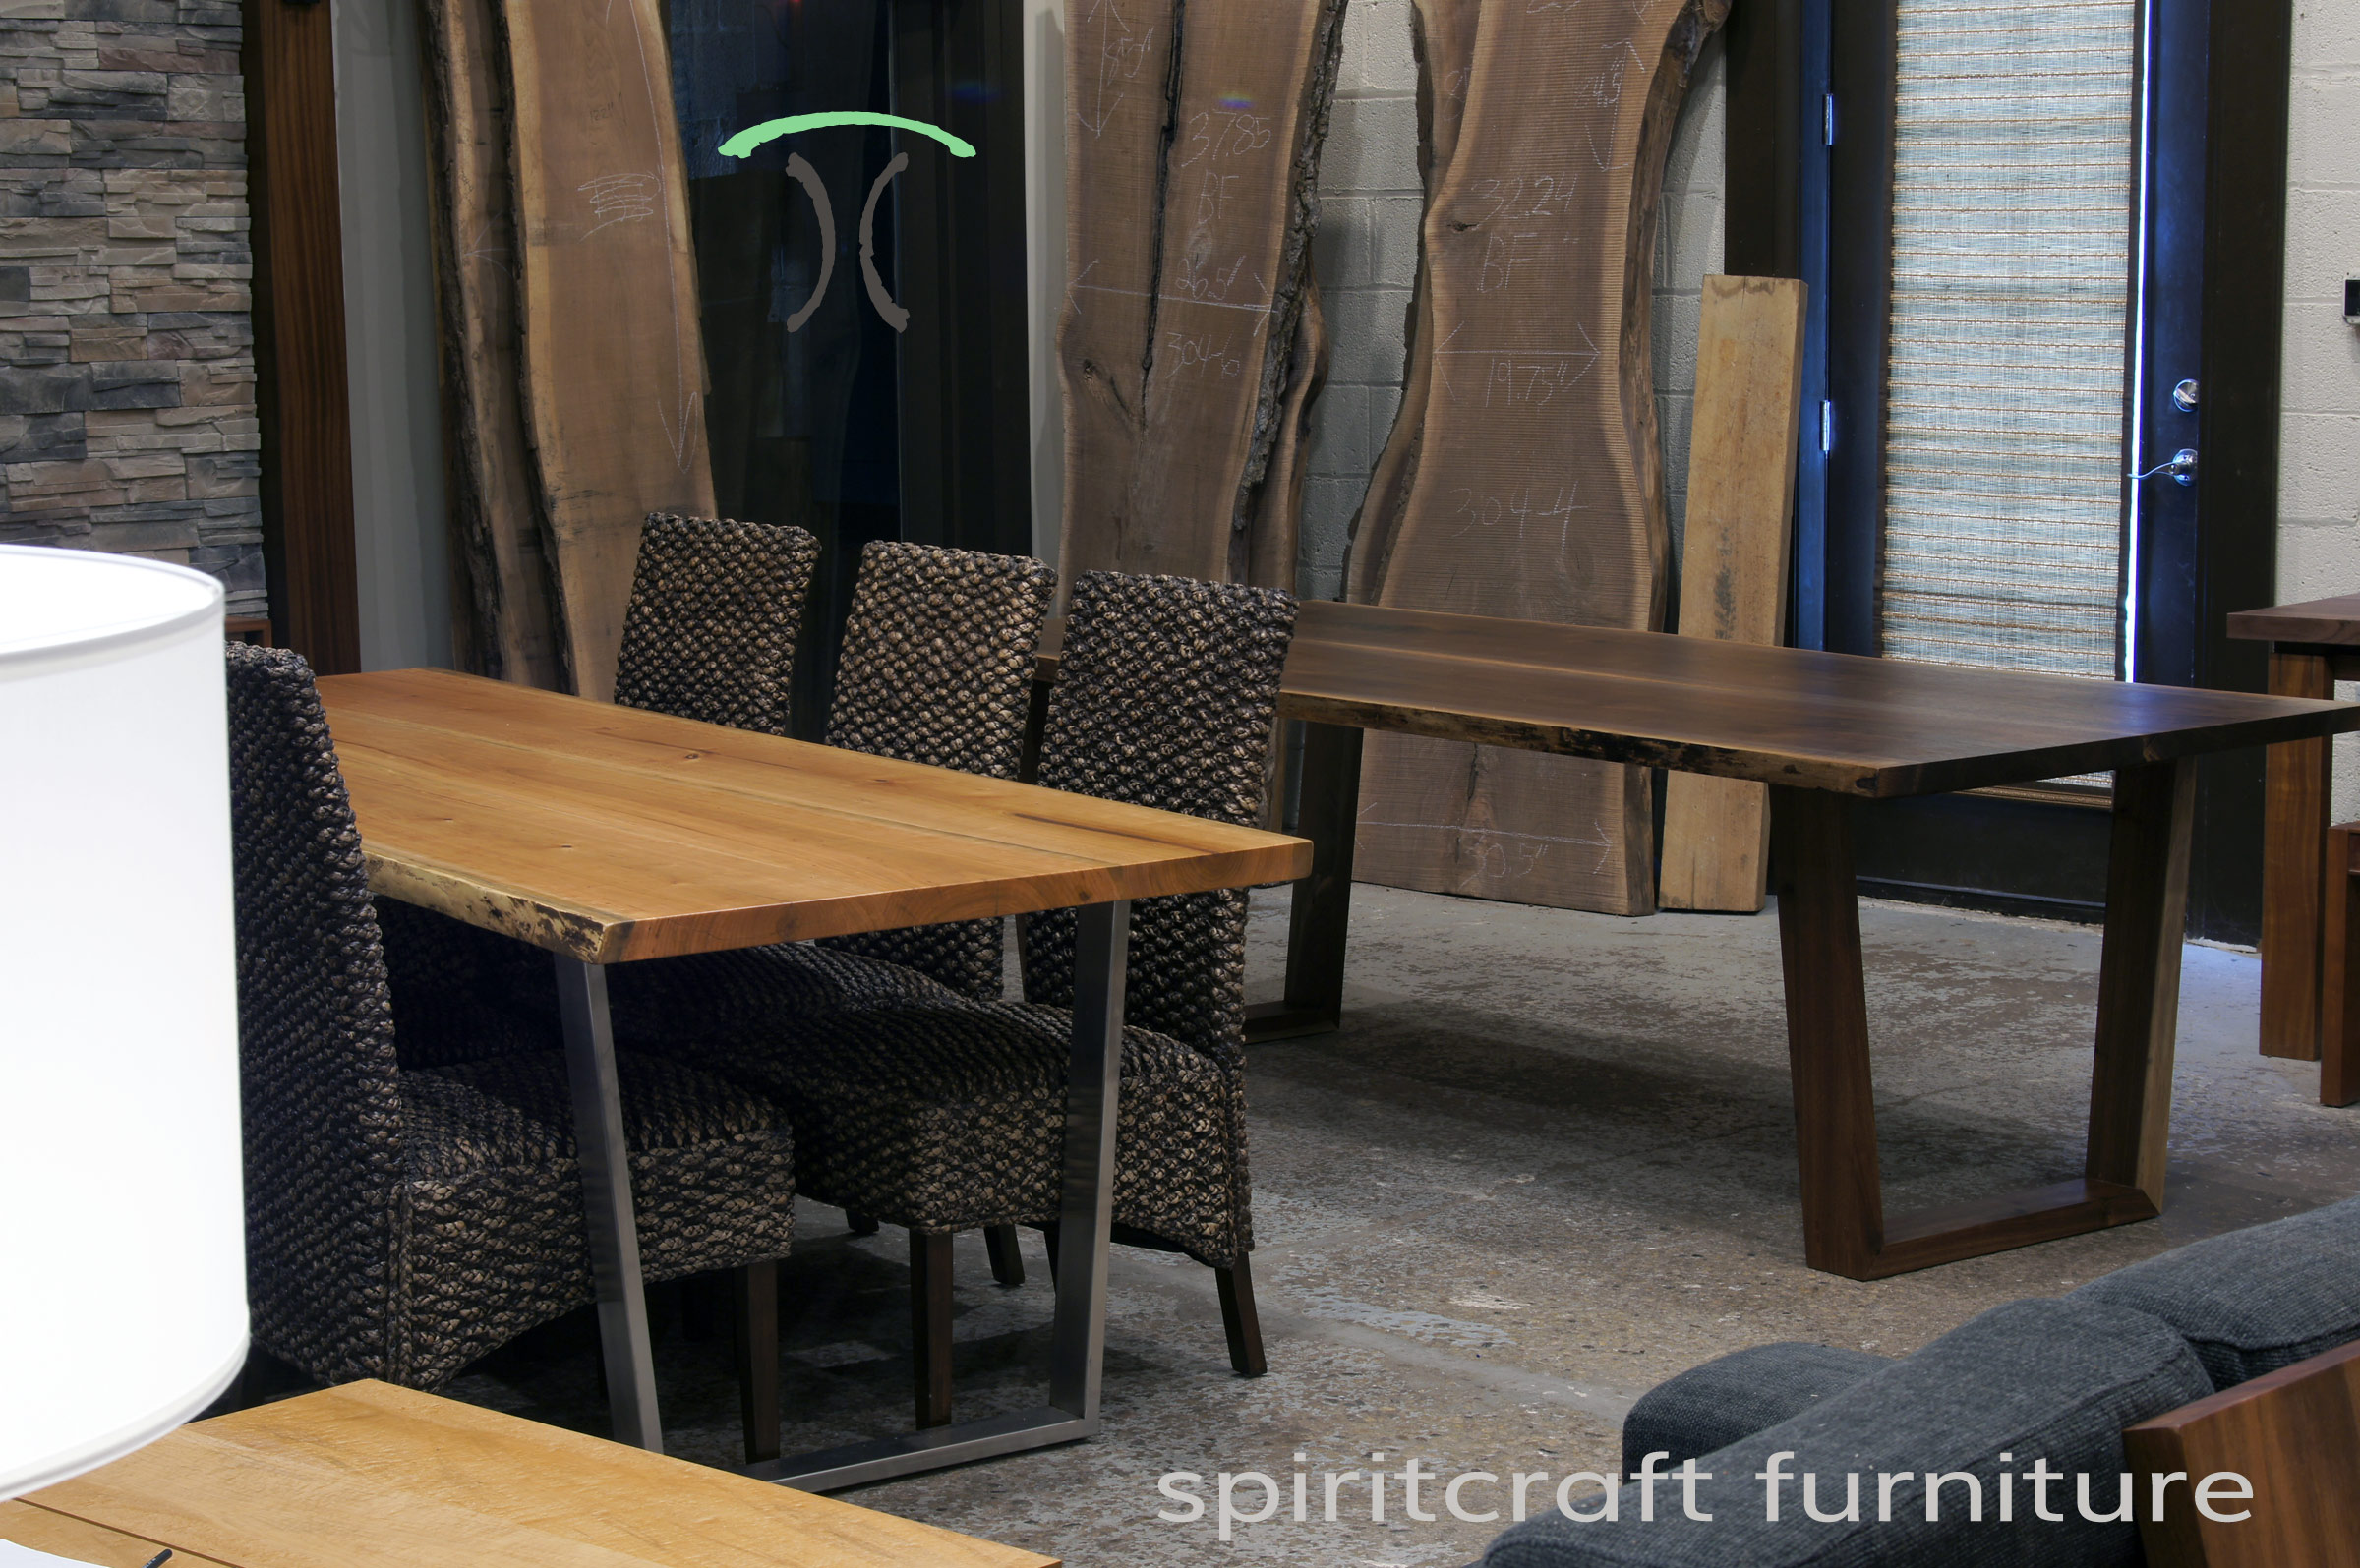 Live edge dining conference tables in solid book-matched Black Walnut and Cherry live edge slabs on Walnut and Stainless steel legs, on display at our retail furniture store in Chicago area, East Dundee, Illinois